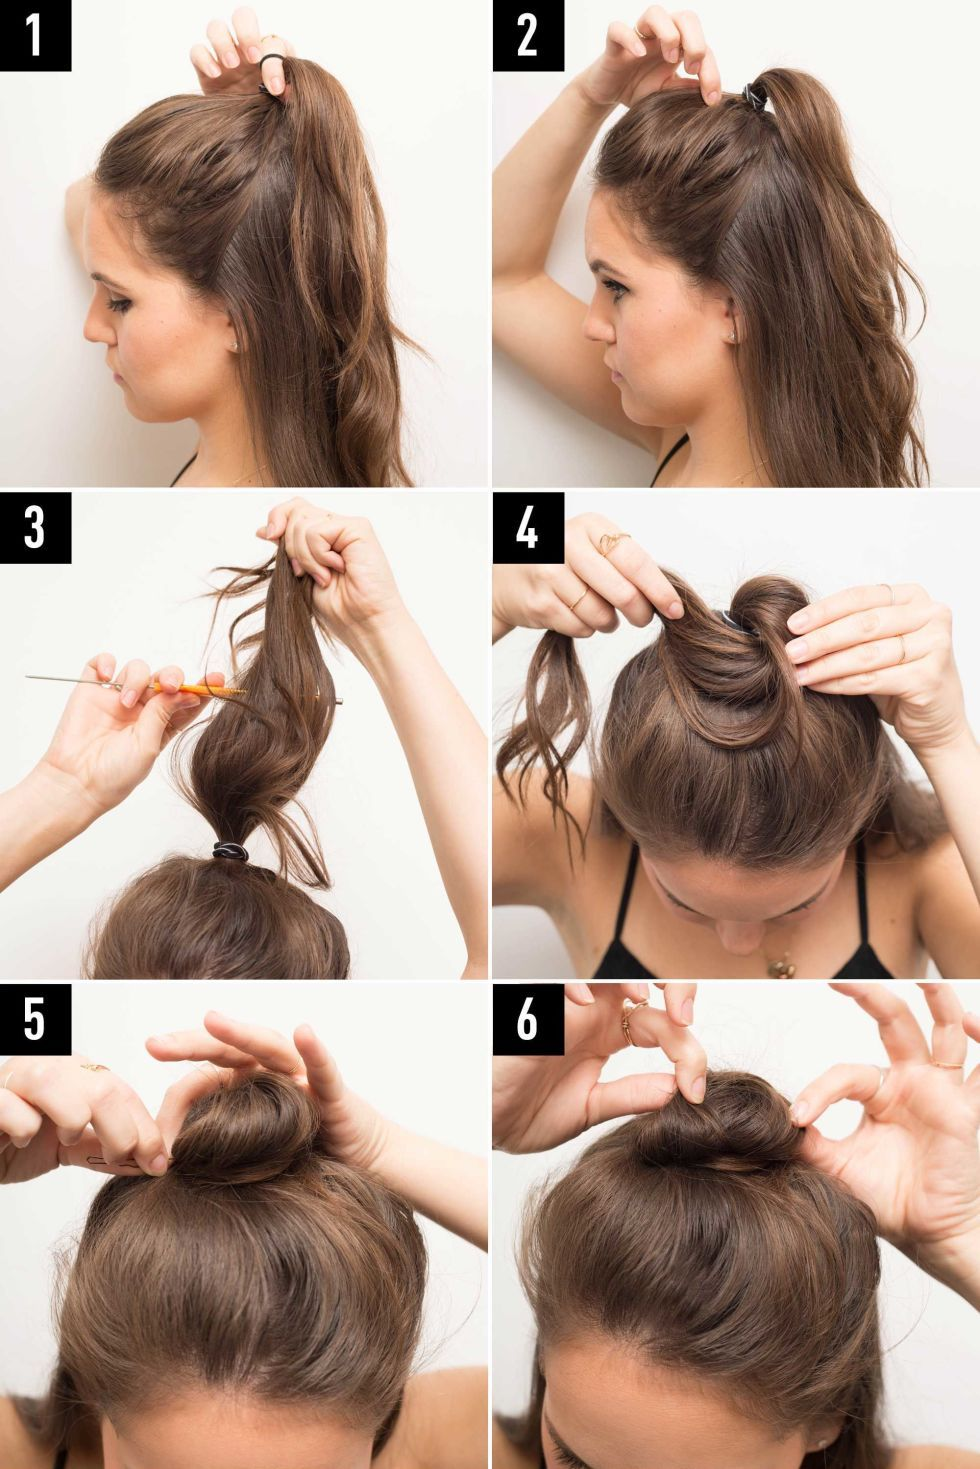 If You Have Long Hair, Use These Tips And Instructions To Make The Half Bun